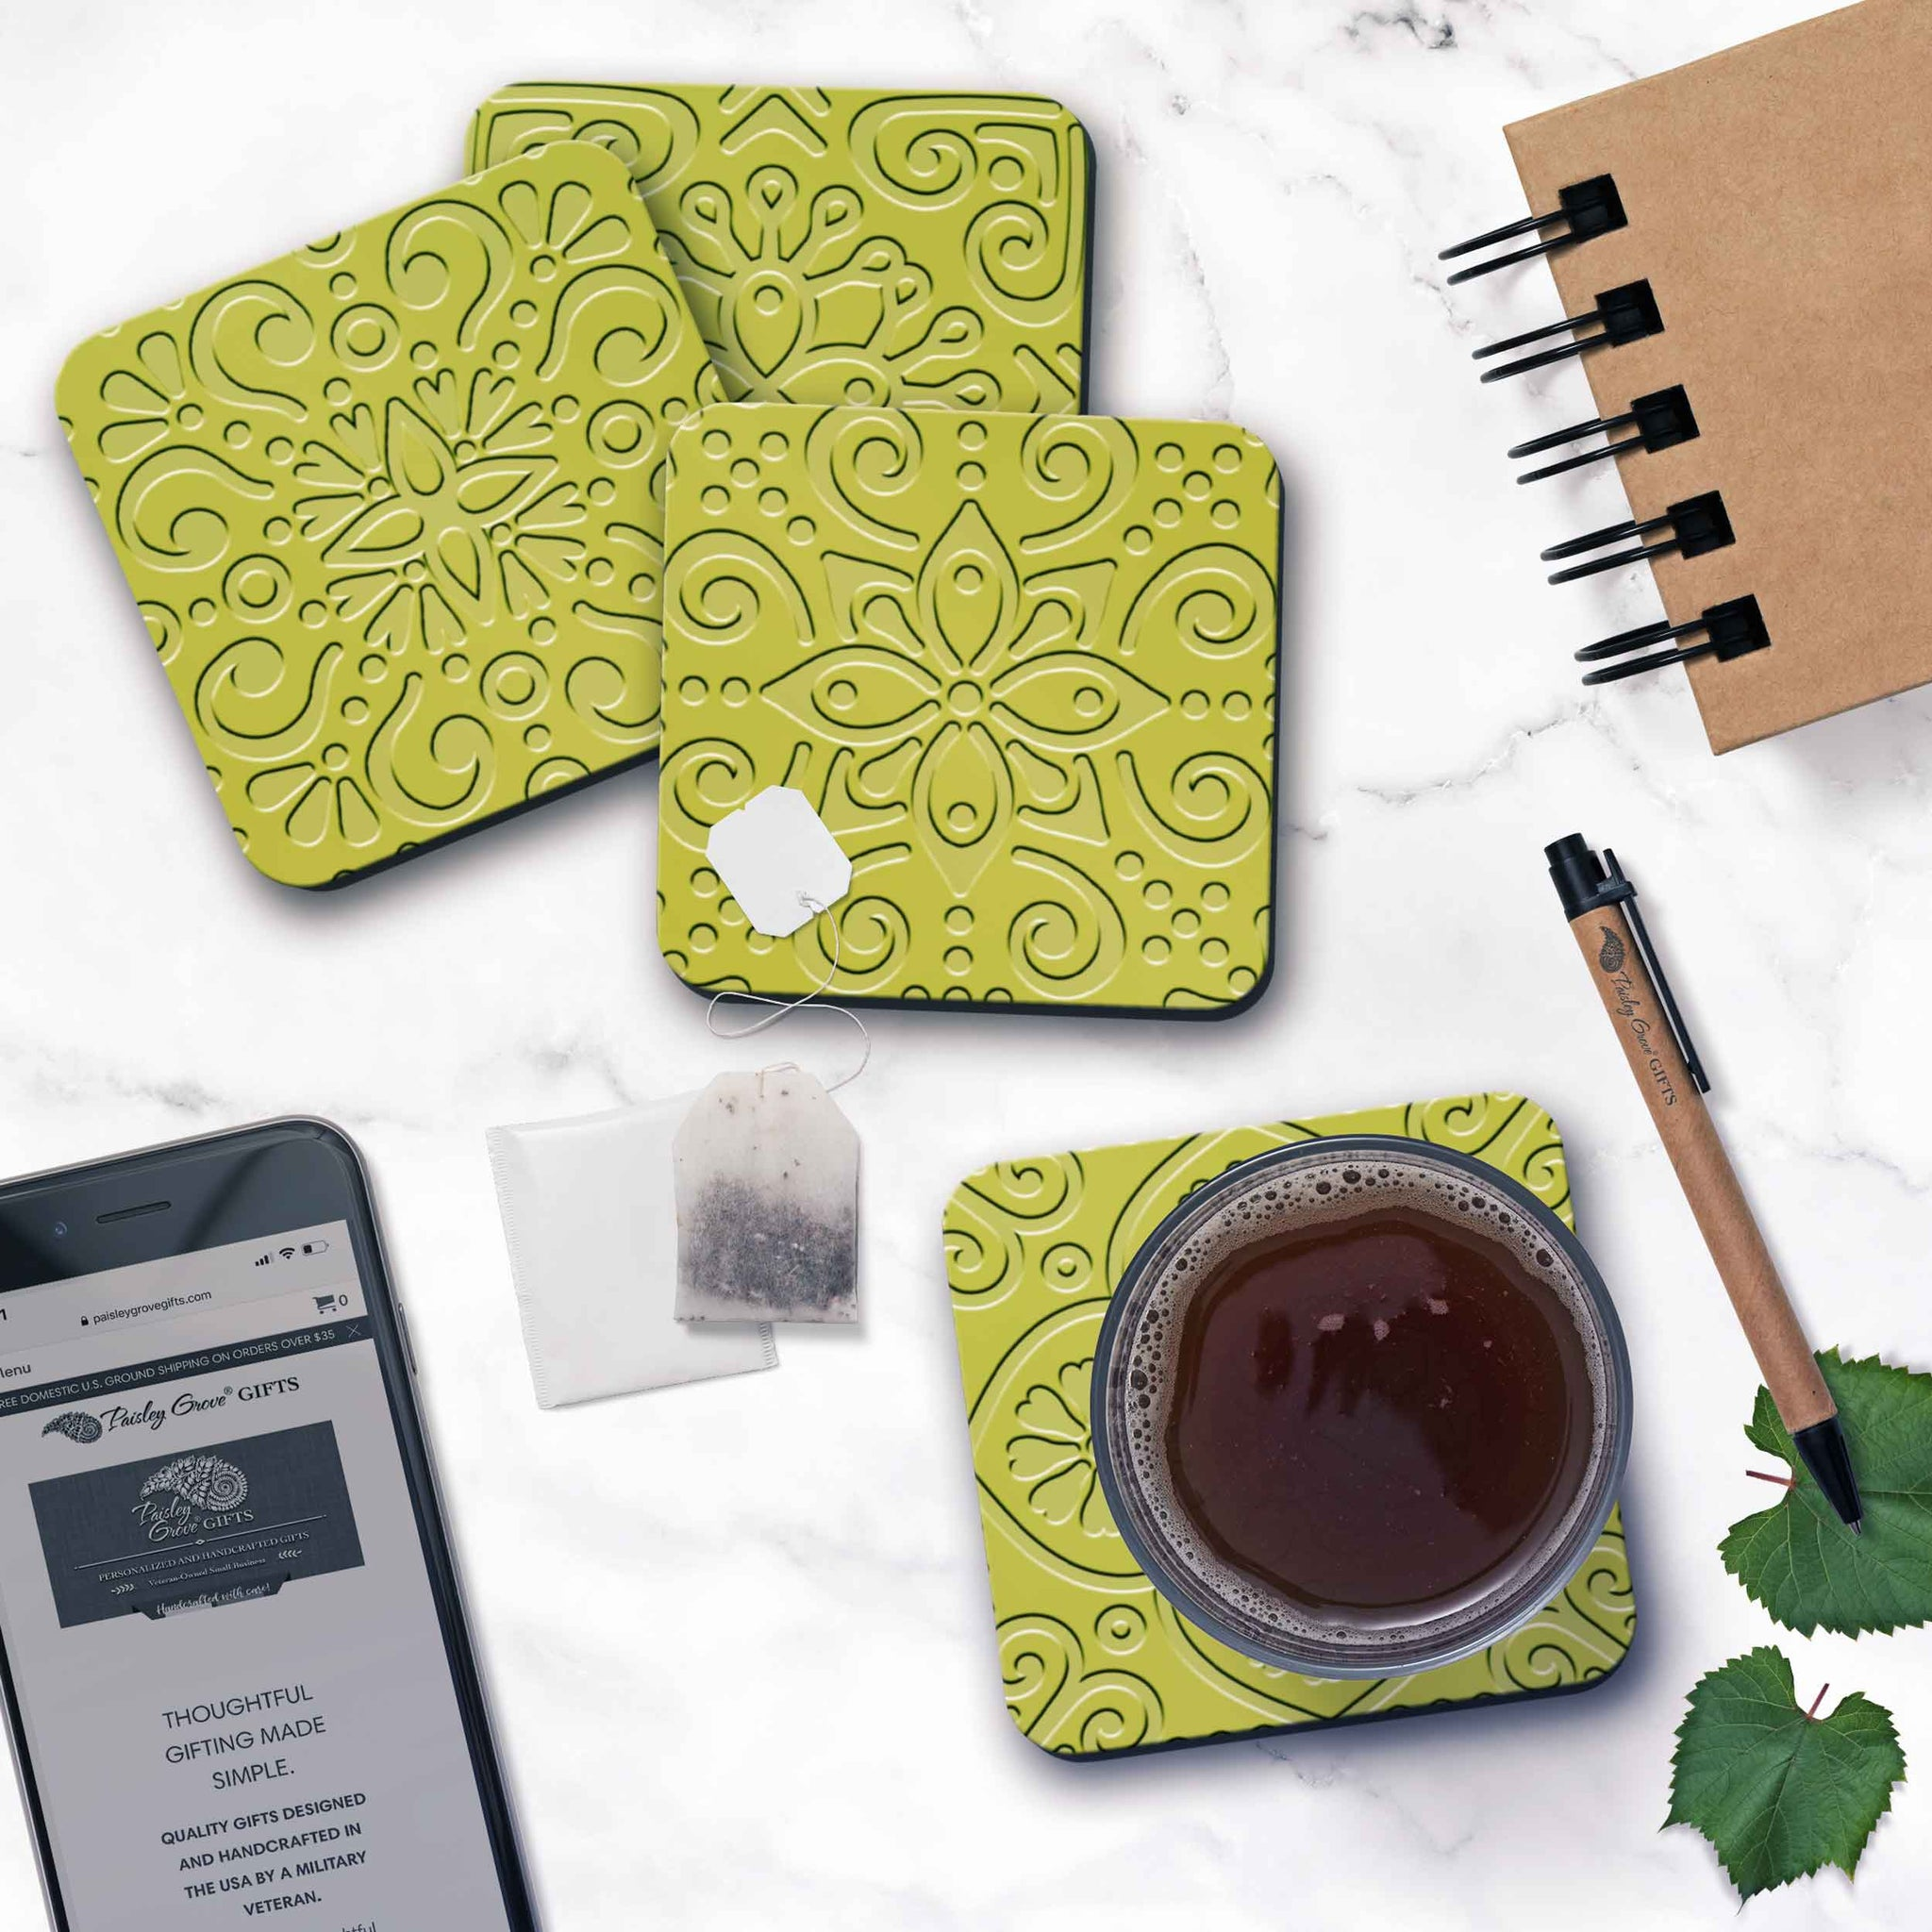 CopyrightPaisleyGroveGIFTS S706b Coasters with Cork backing table protection Modern Decoration in Trendy Chartreuse